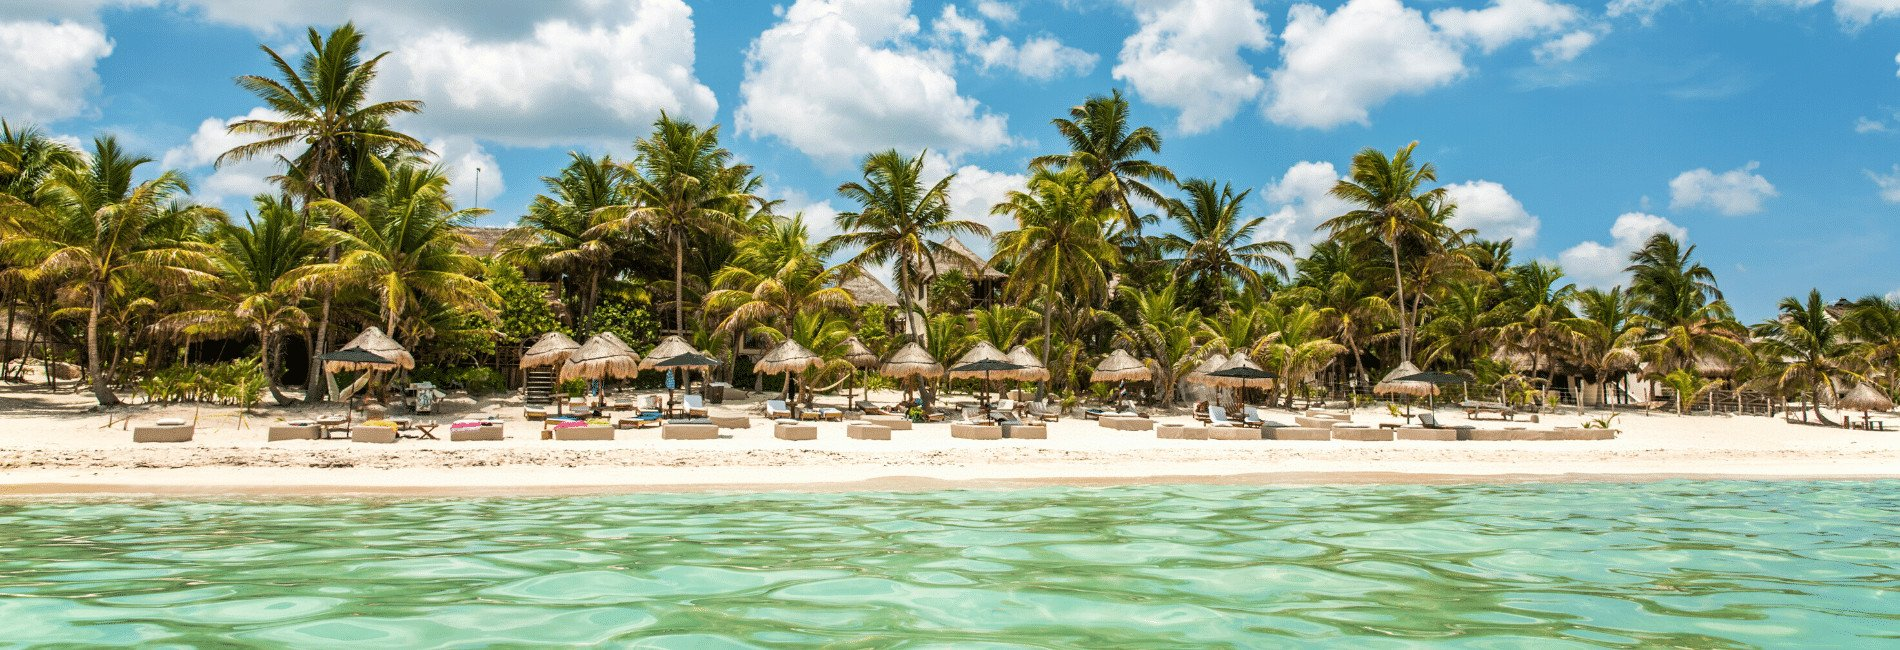 Tulum Hotel Guide. Best places to stay in Tulum